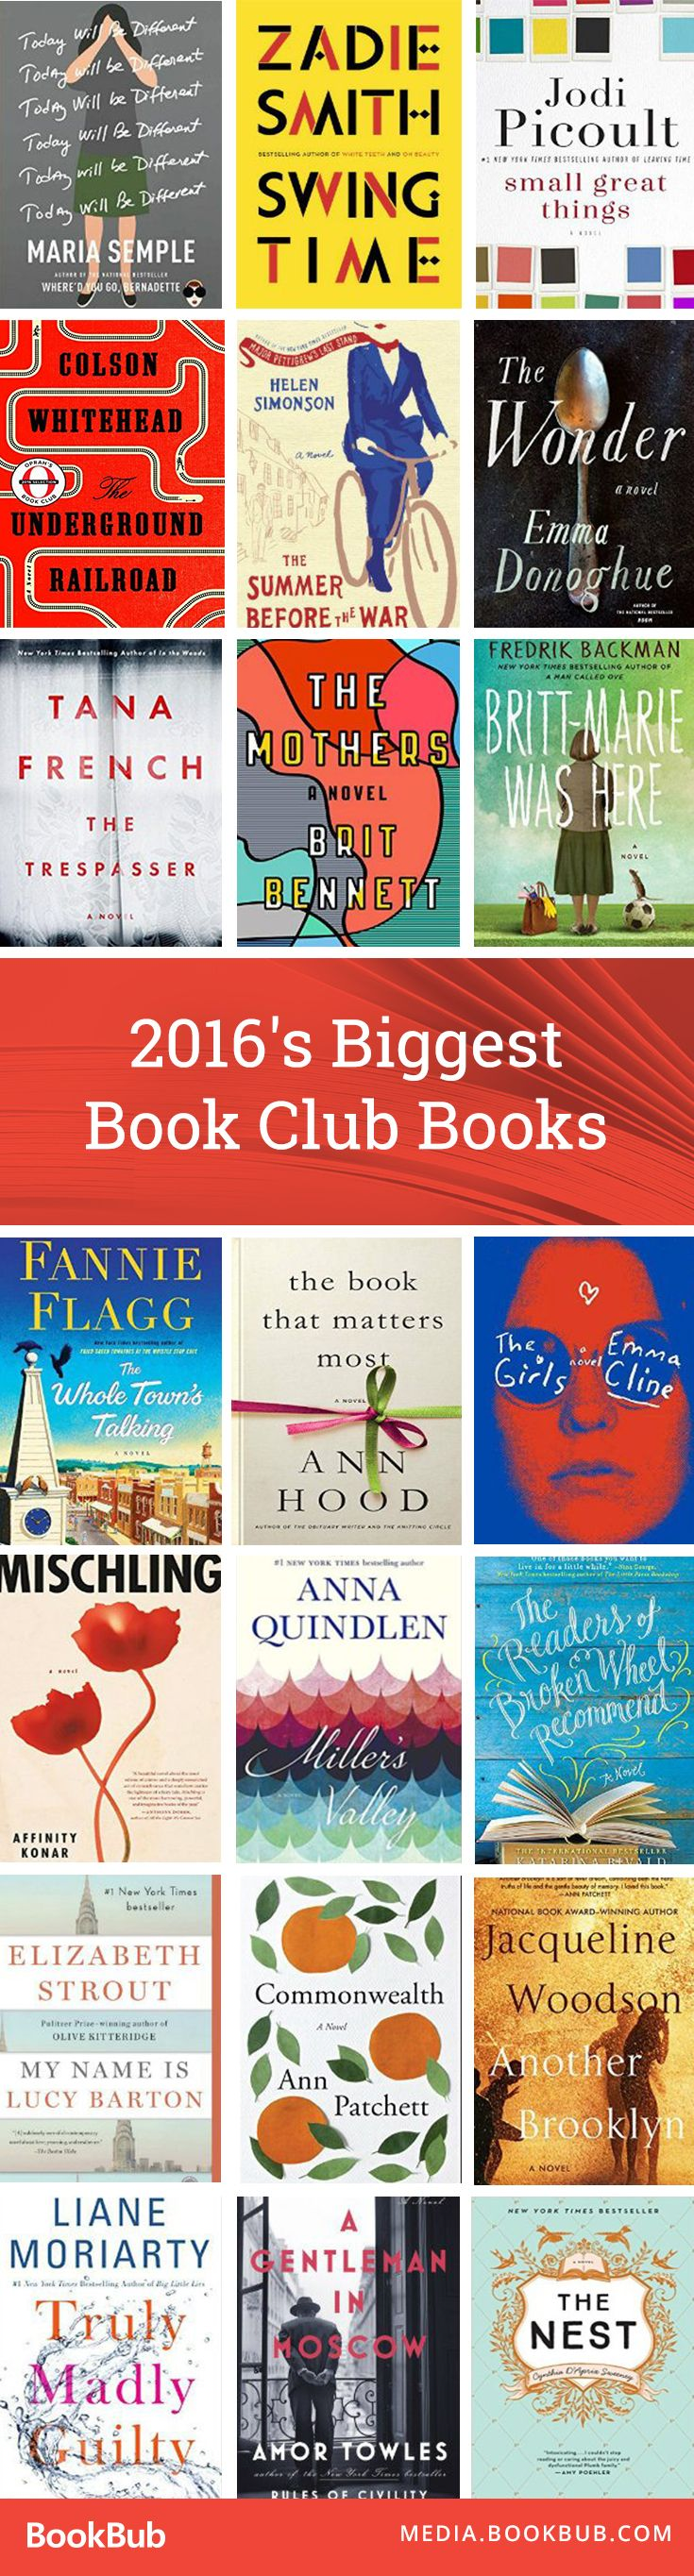 Consider trying one of these top picks of 2016 for your book club this year! This list from BookBub features The Underground Railroad by Colson Whitehead, Commonwealth by Ann Patchett, Swing Time by Zadie Smith, and many more.